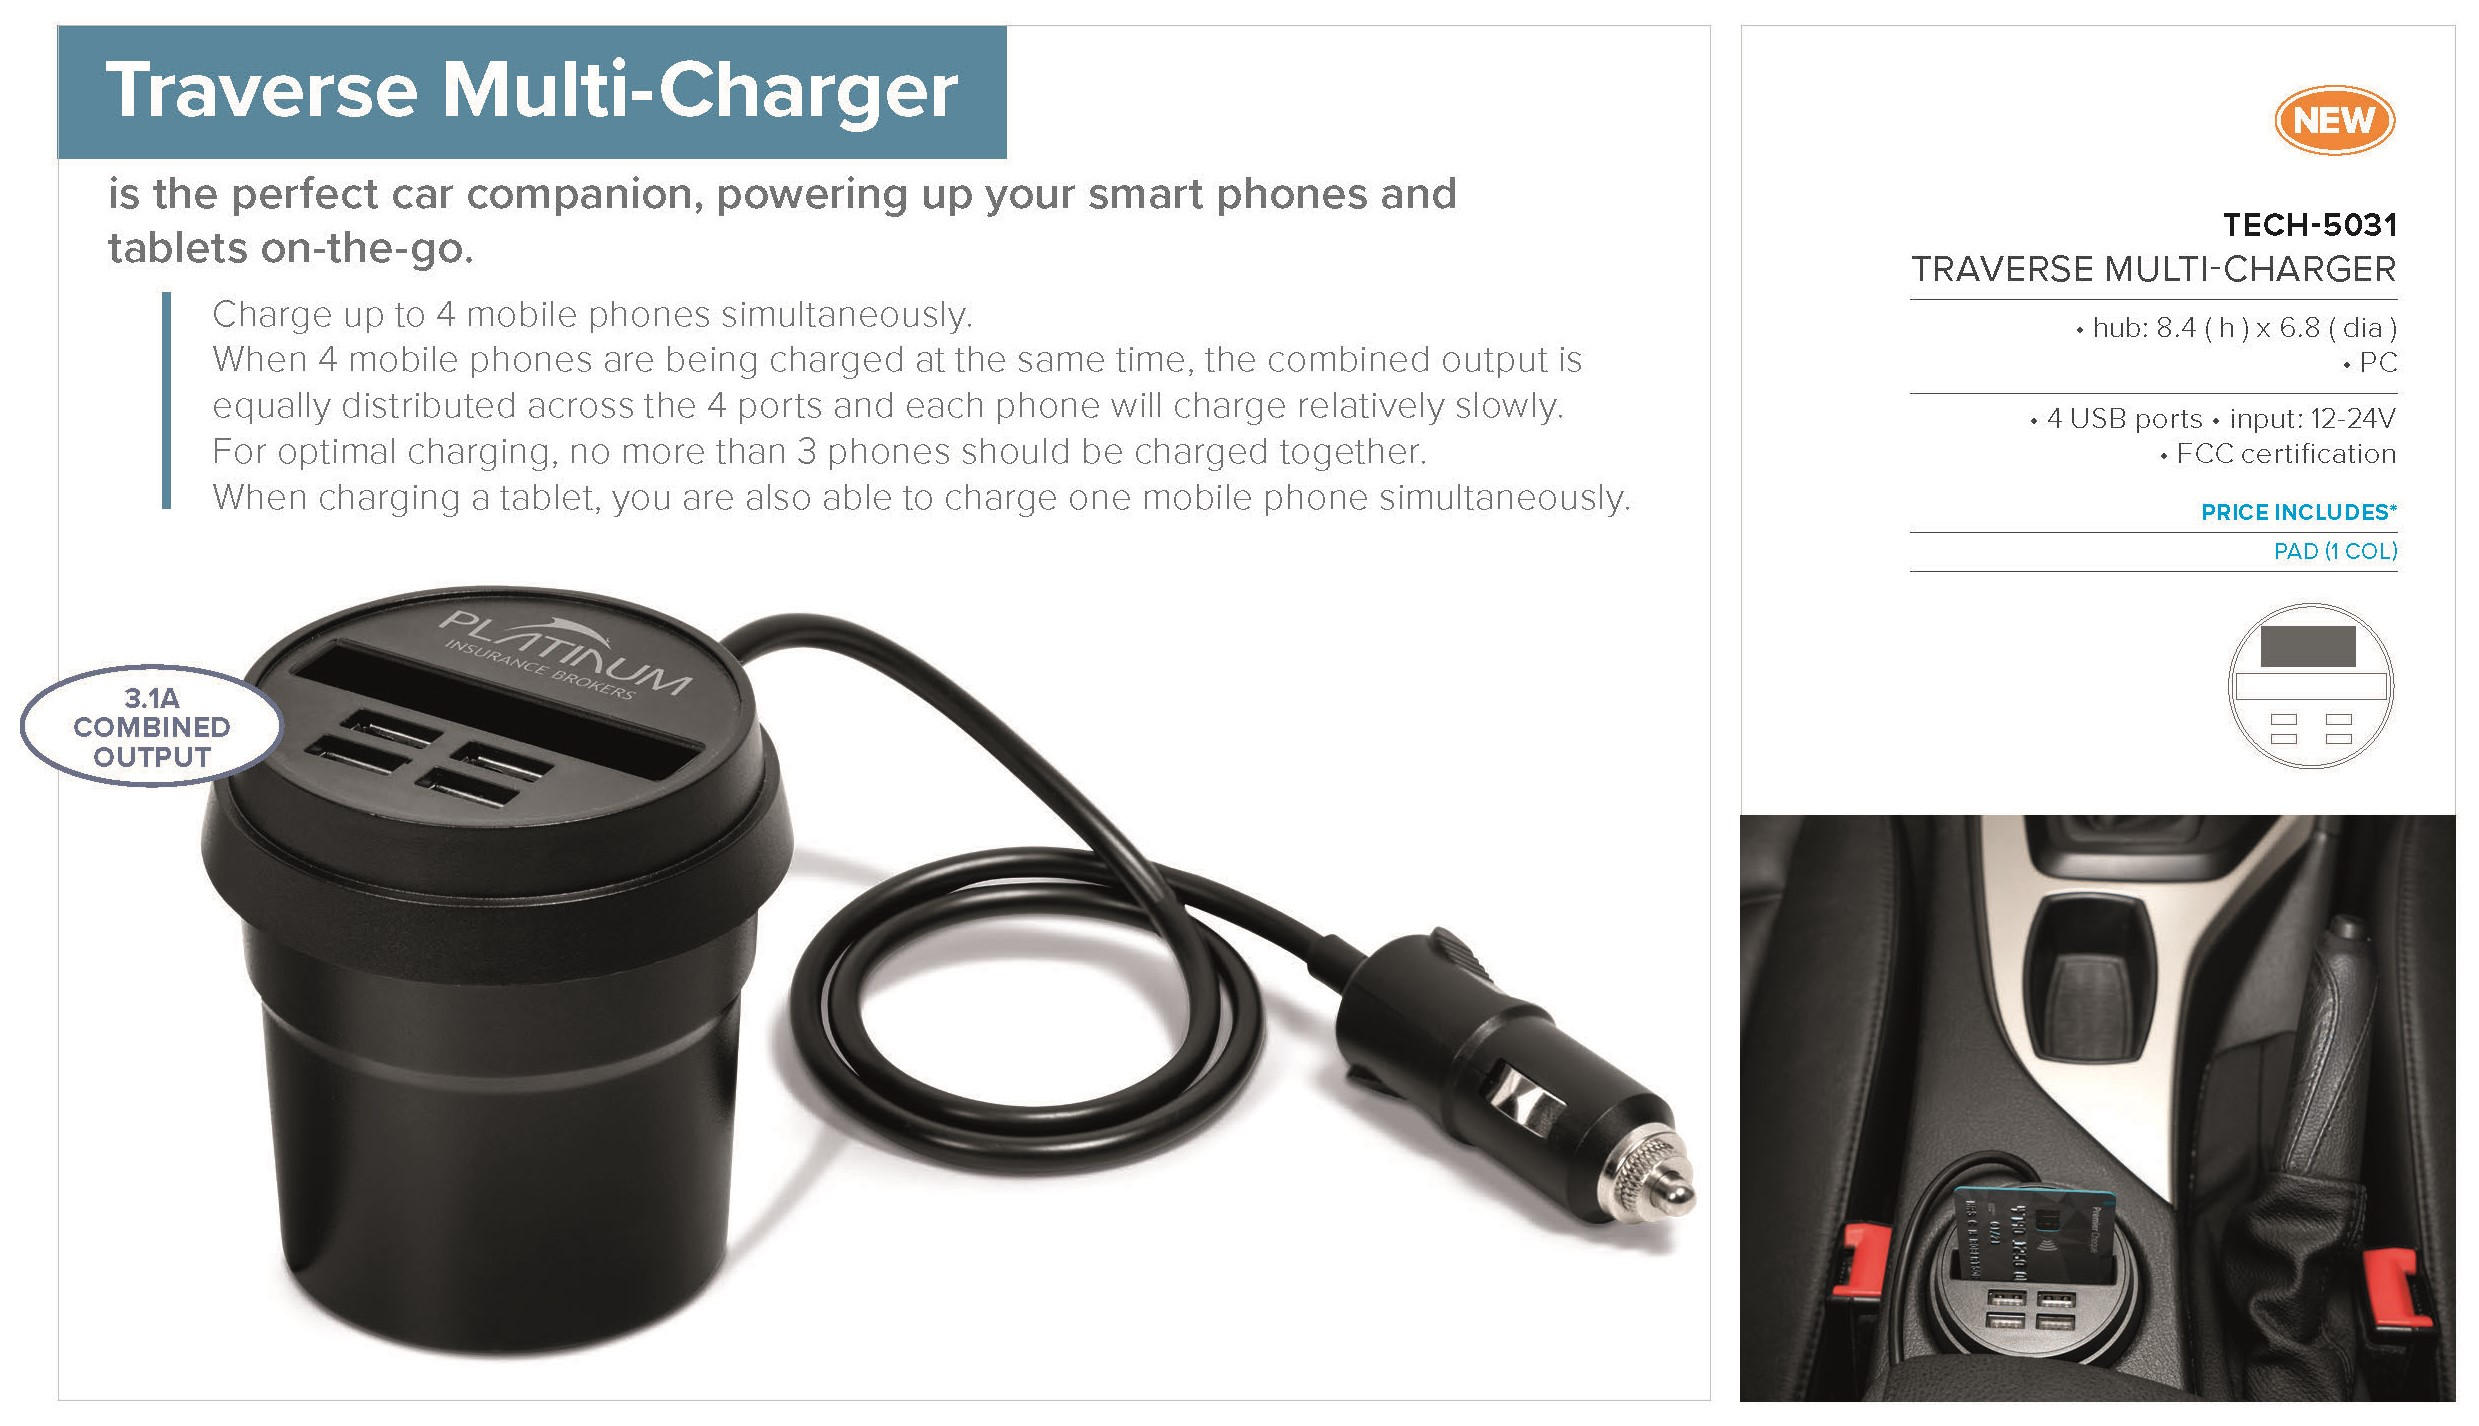 Traverse Multi-Charger